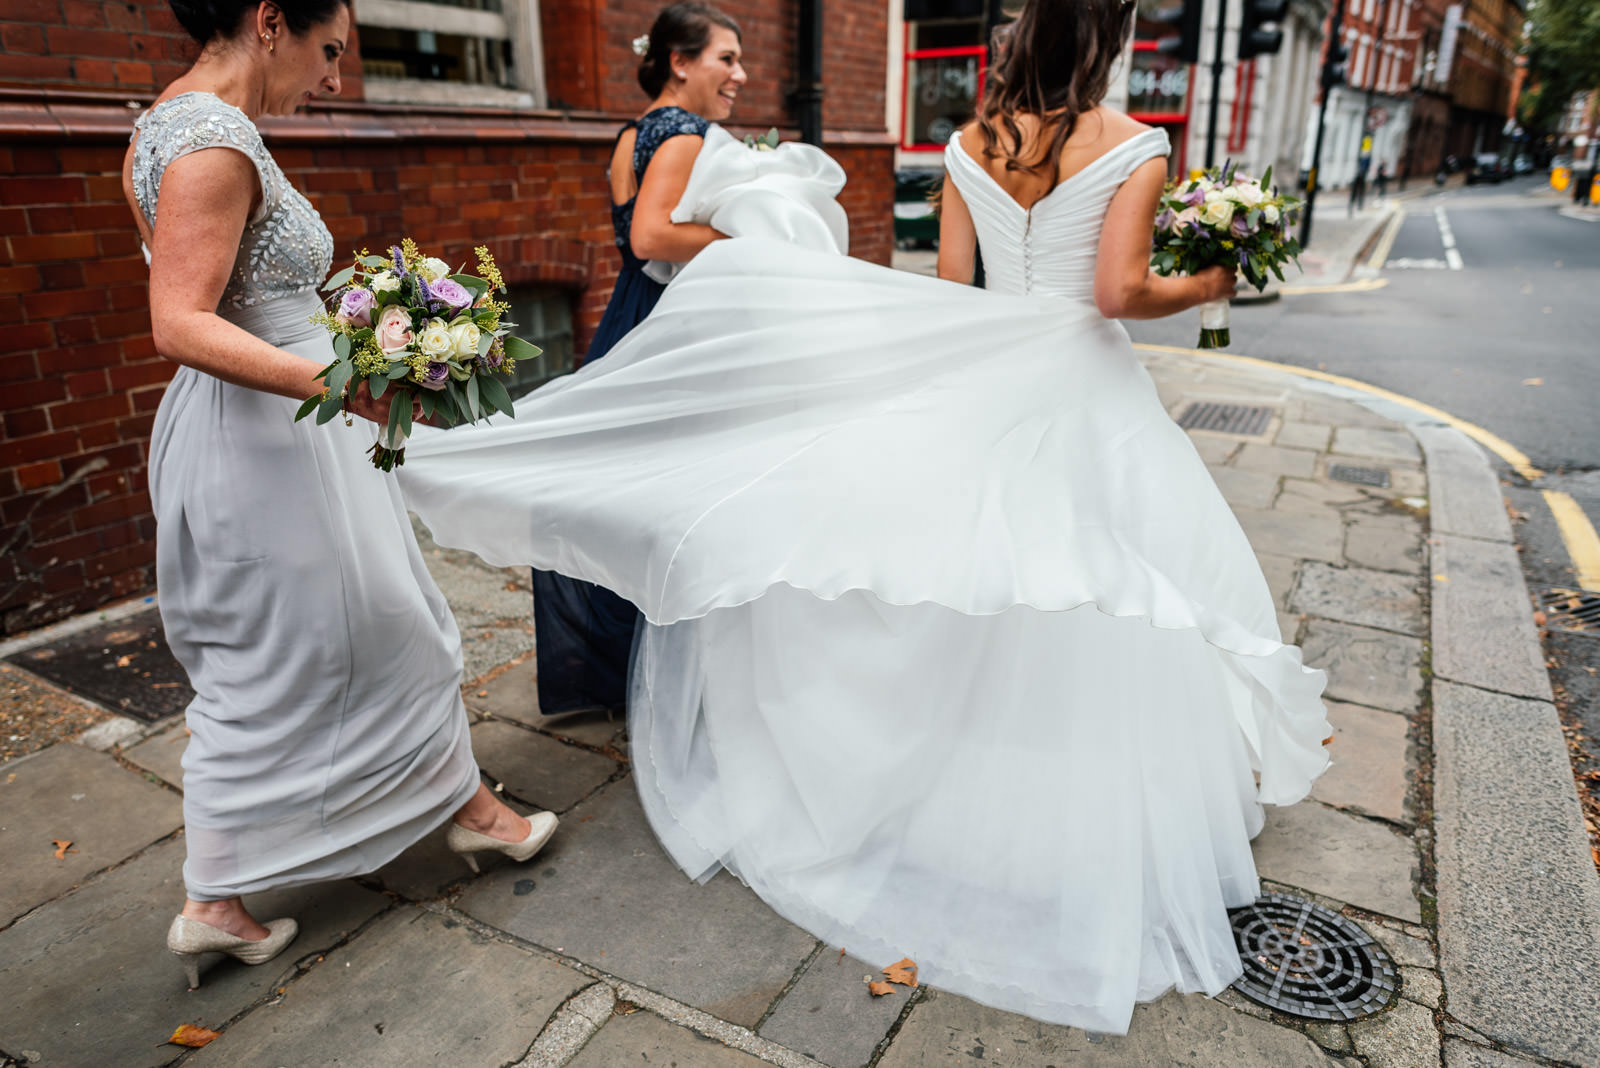 bride and bridesmaids walking in the street